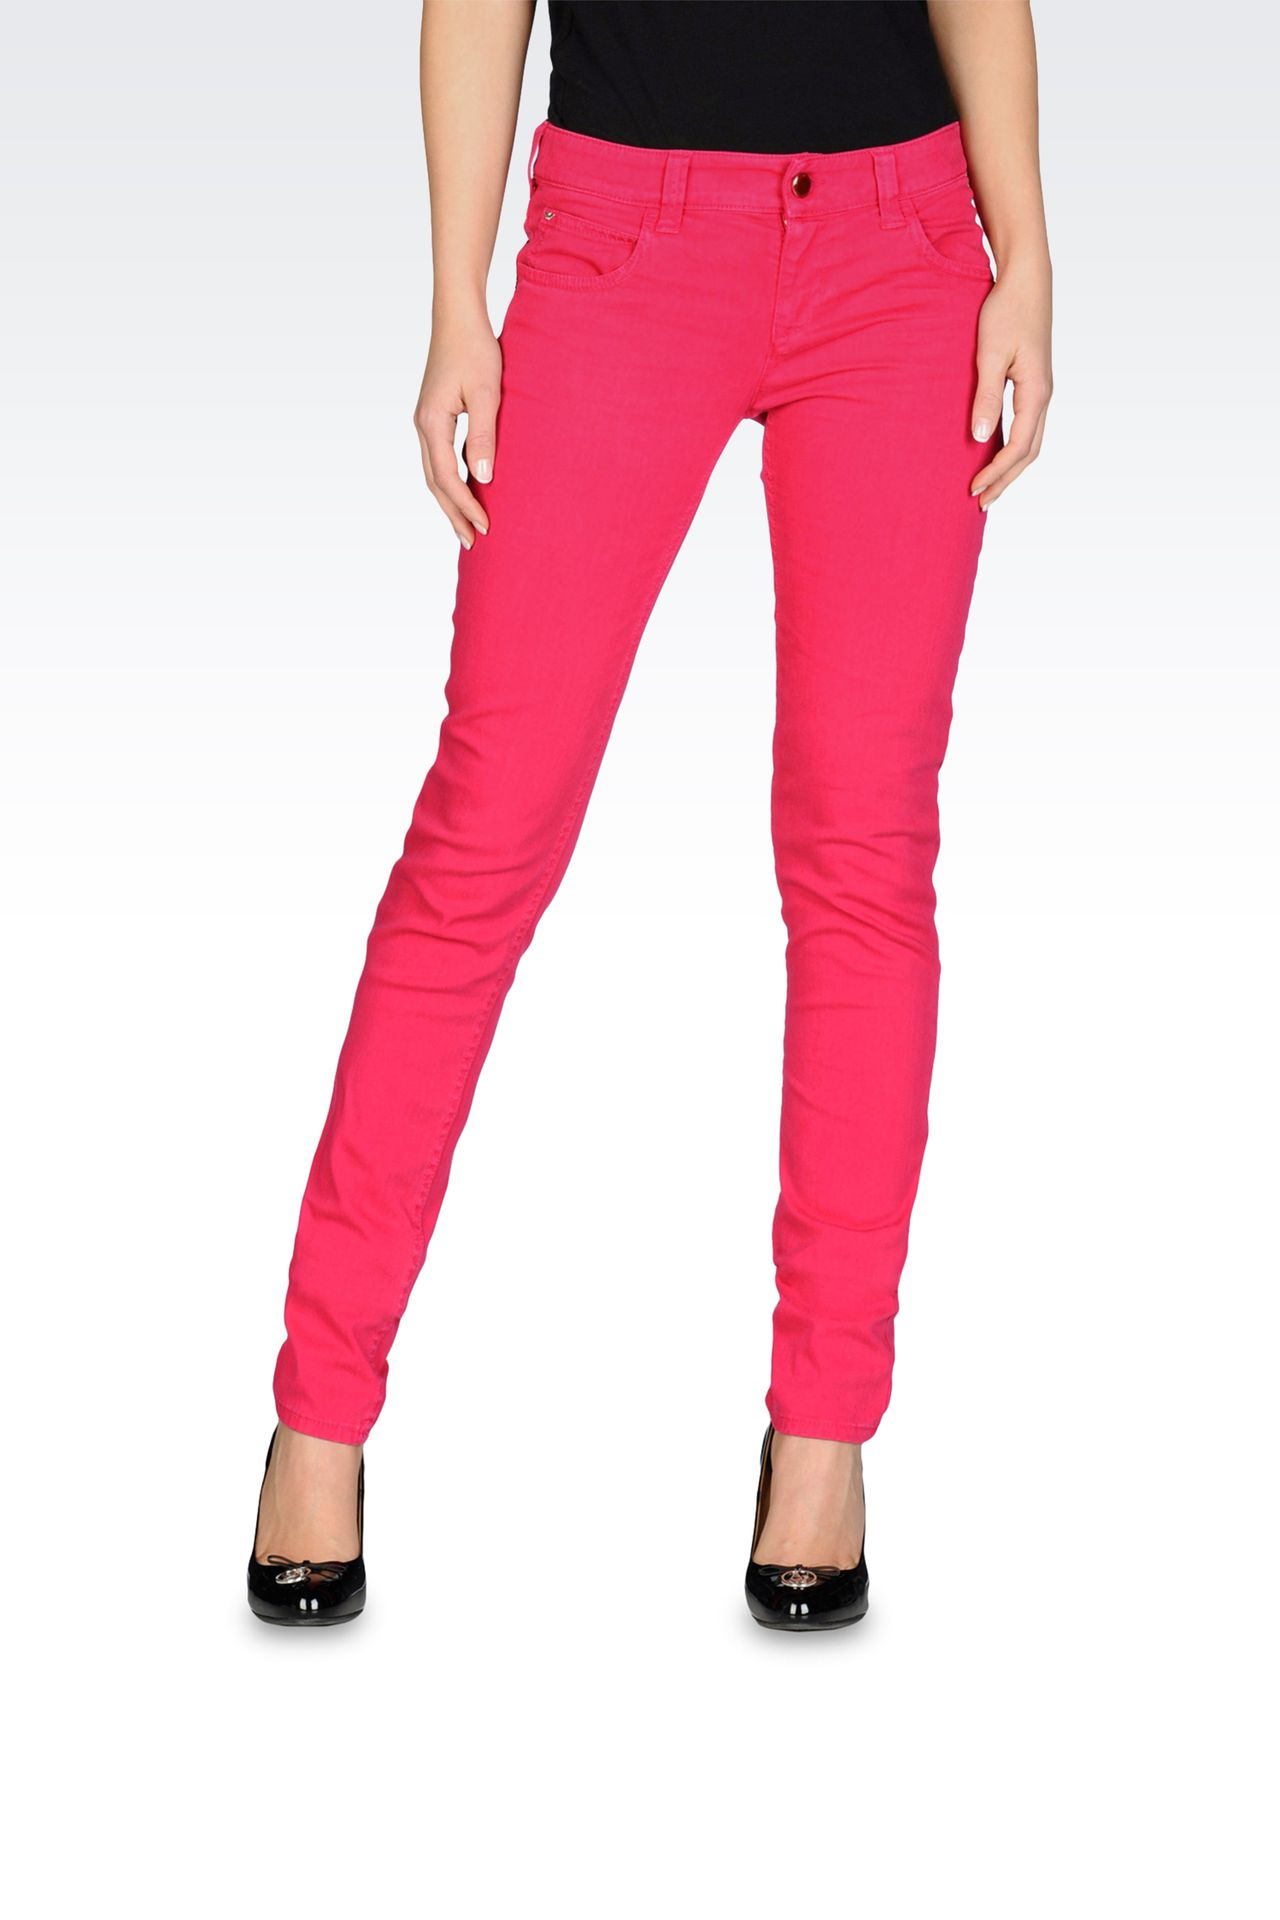 Stretch bull denim skinny jeans, old wash: 5 pockets Women by Armani - 0